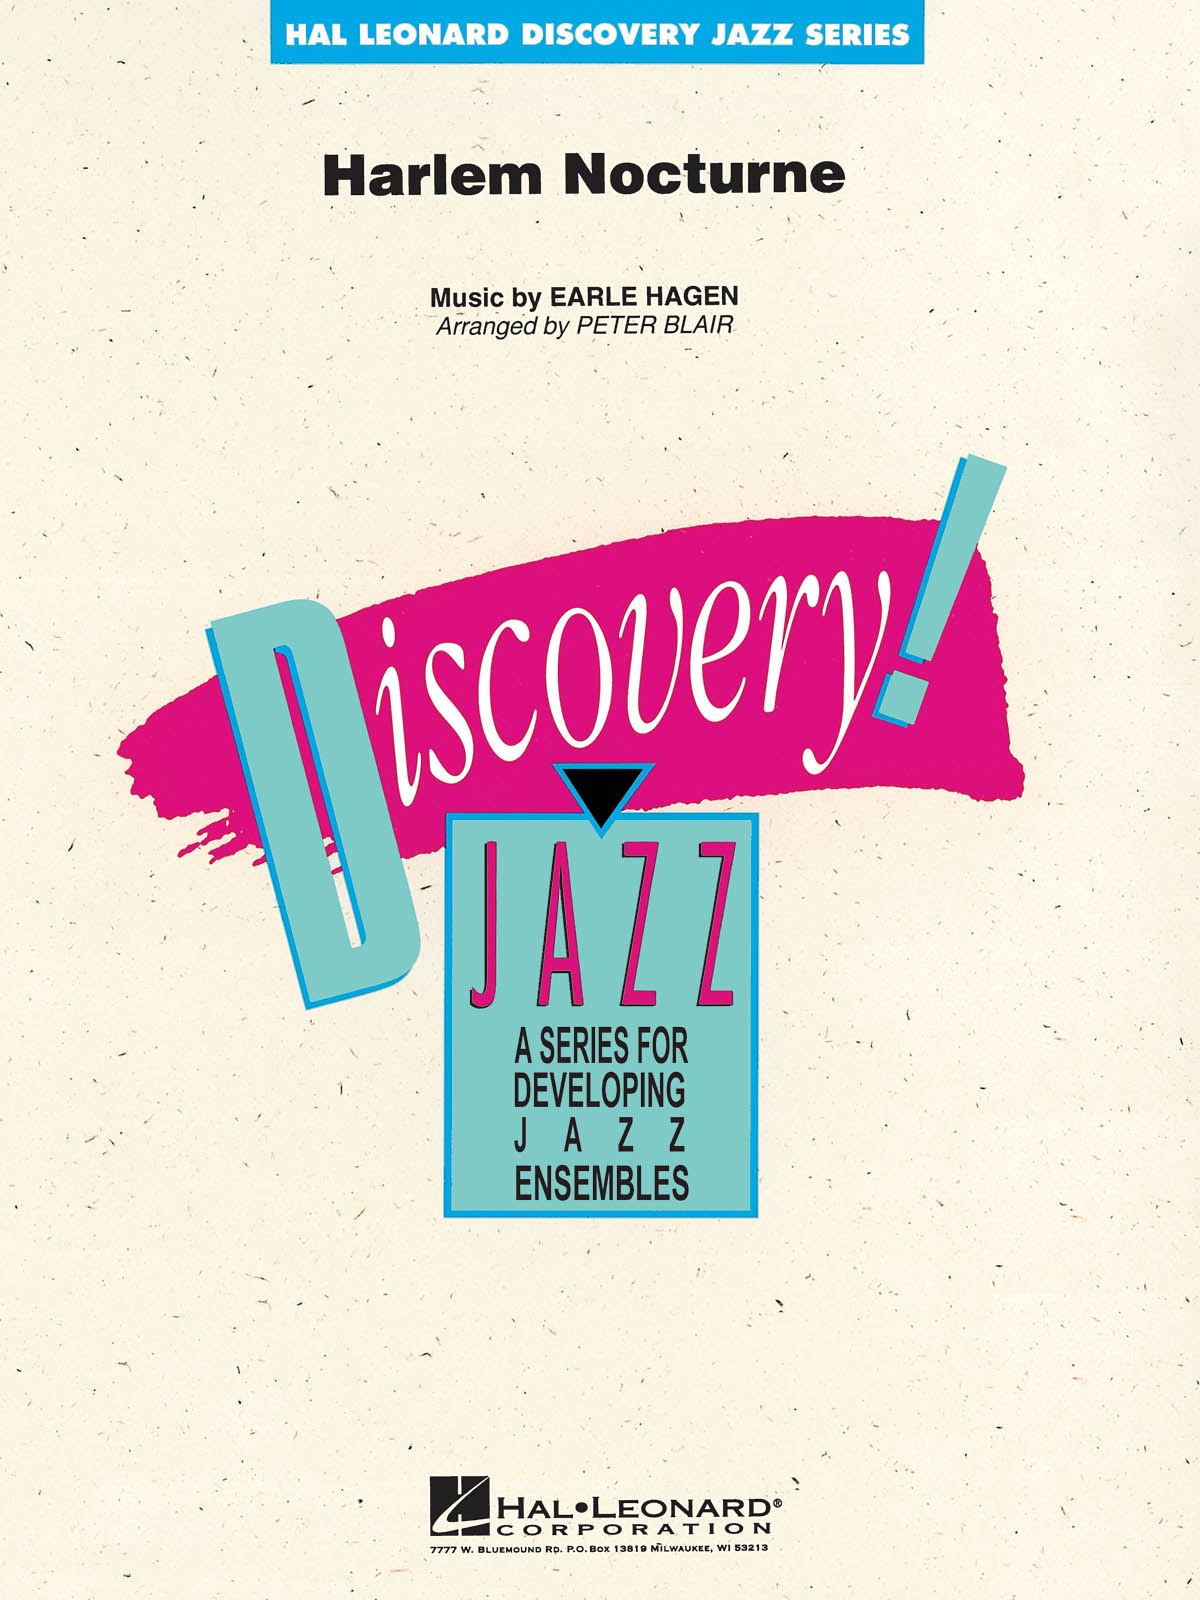 Harlem Nocturne: Discovery Jazz